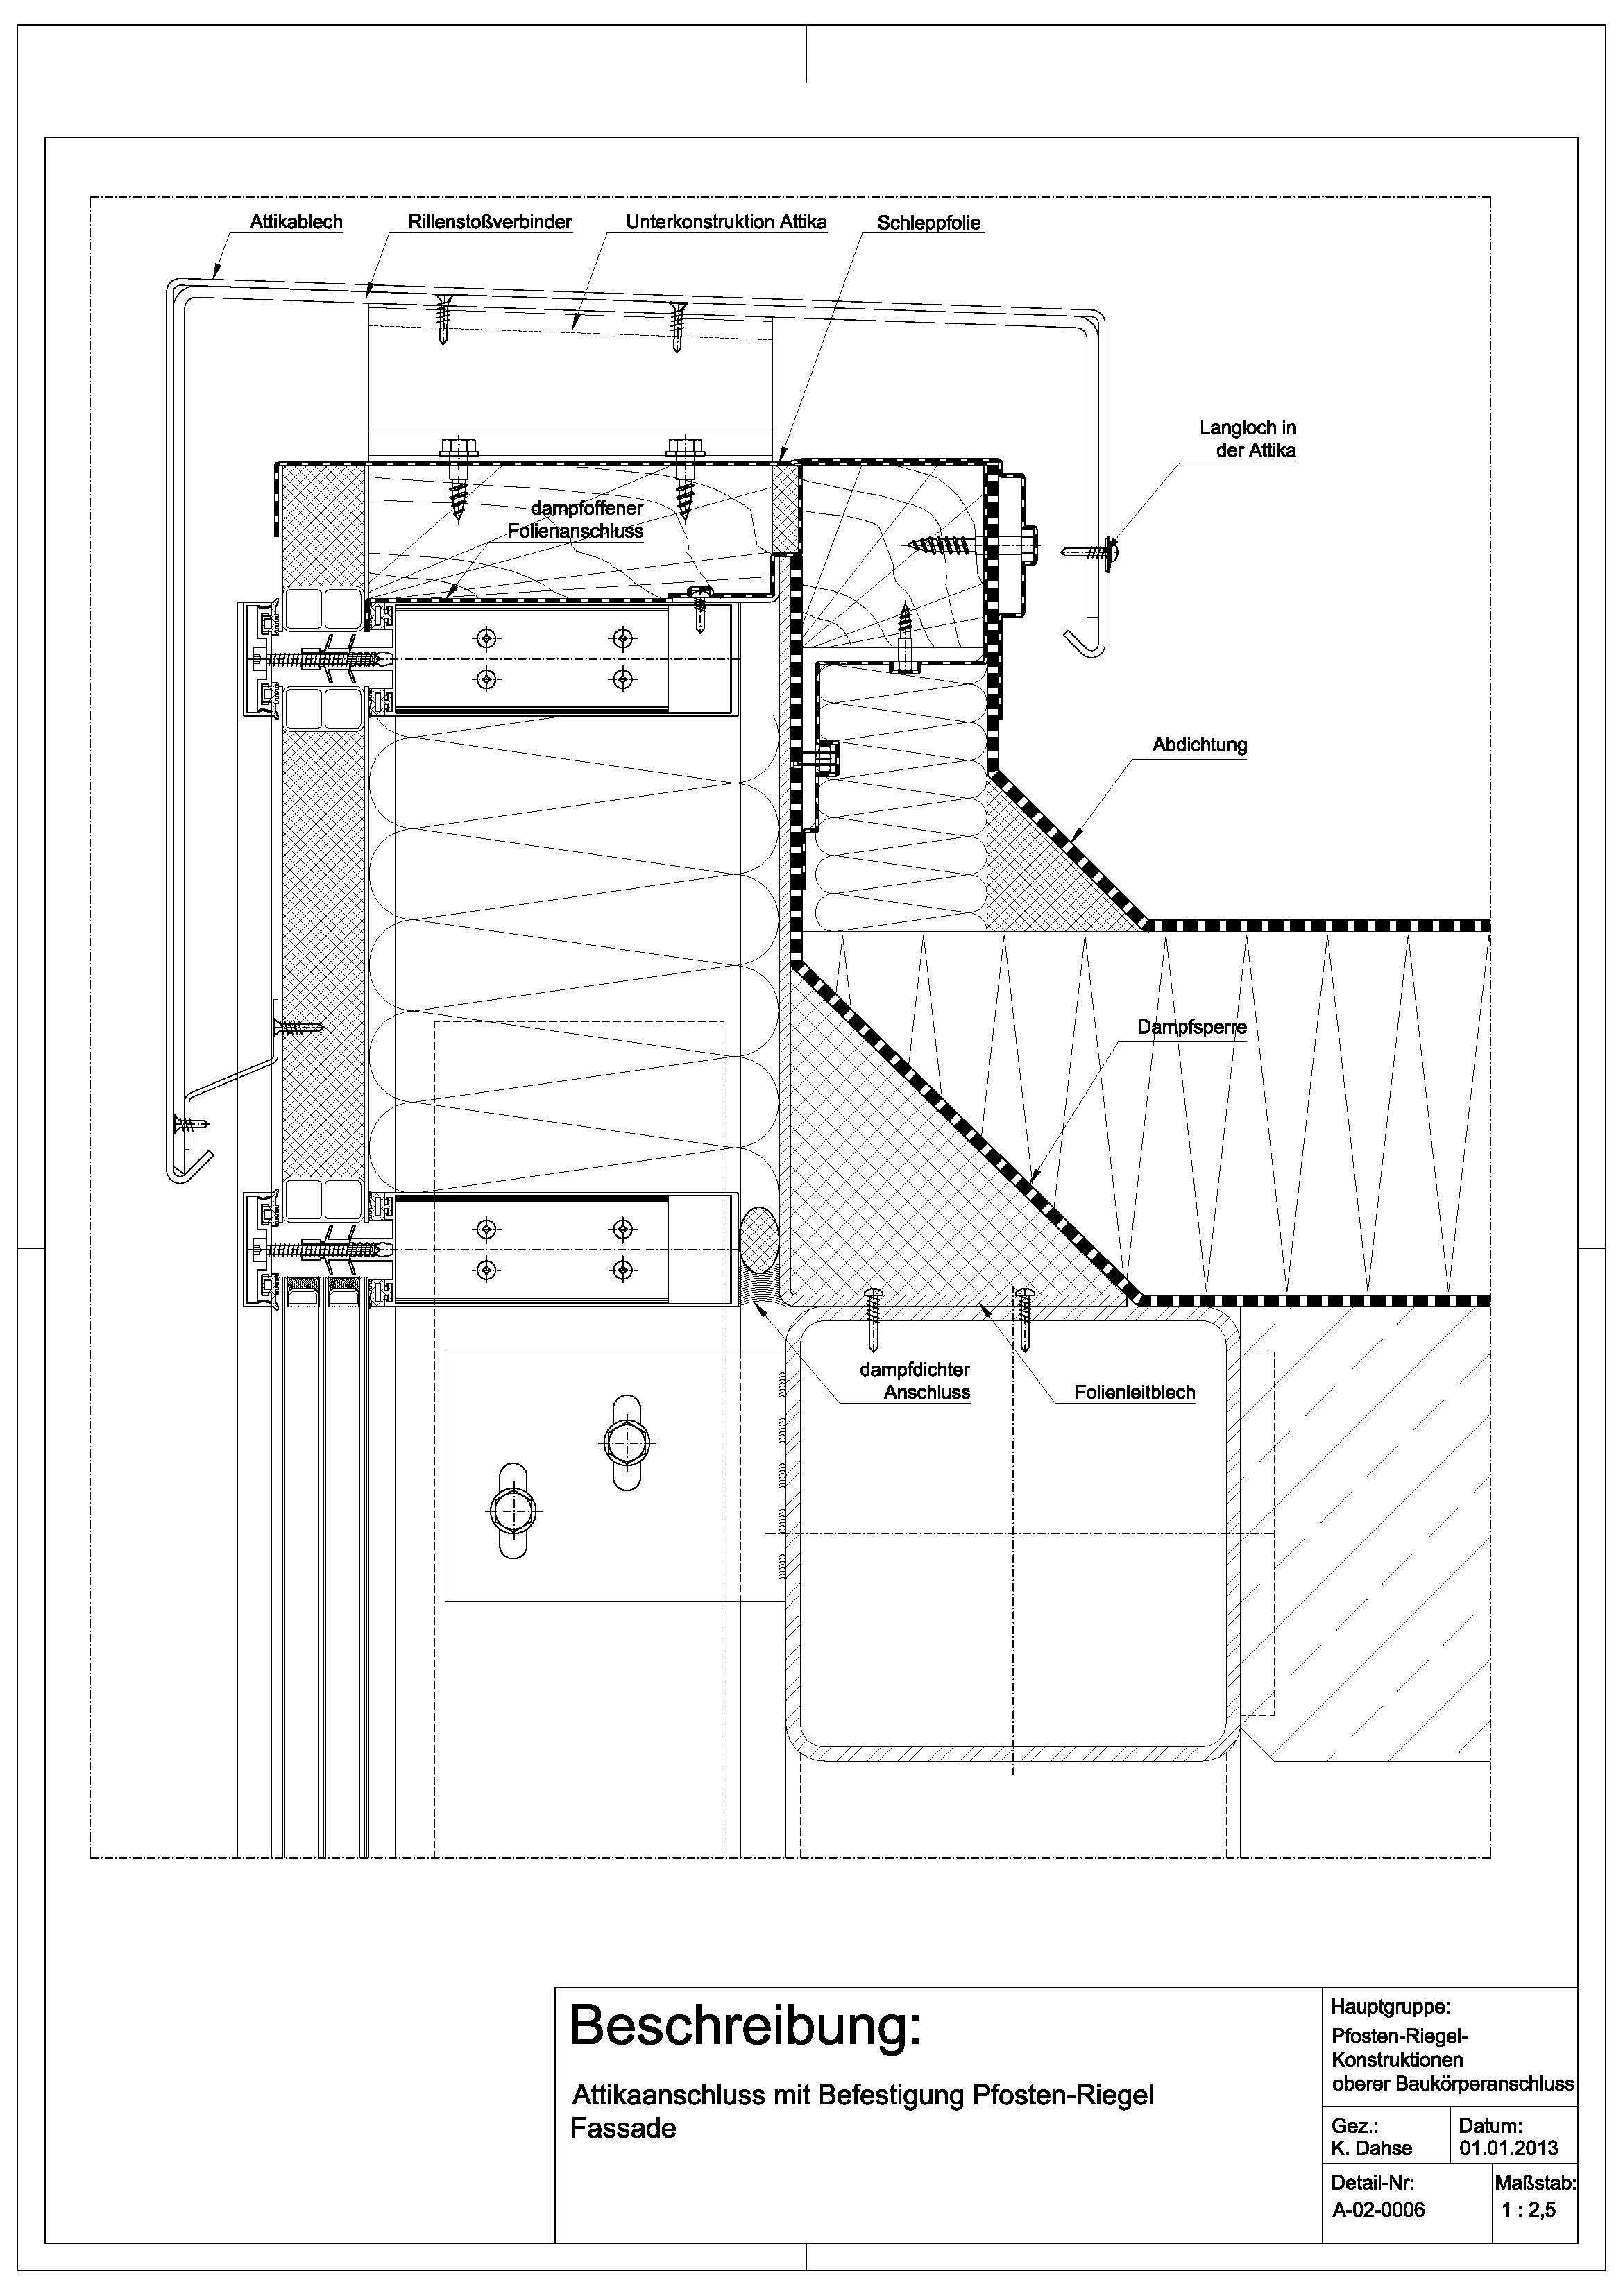 a 02 0006 attikaanschluss mit befestigung an pfosten riegel fassade a 02 0006 drawing details. Black Bedroom Furniture Sets. Home Design Ideas